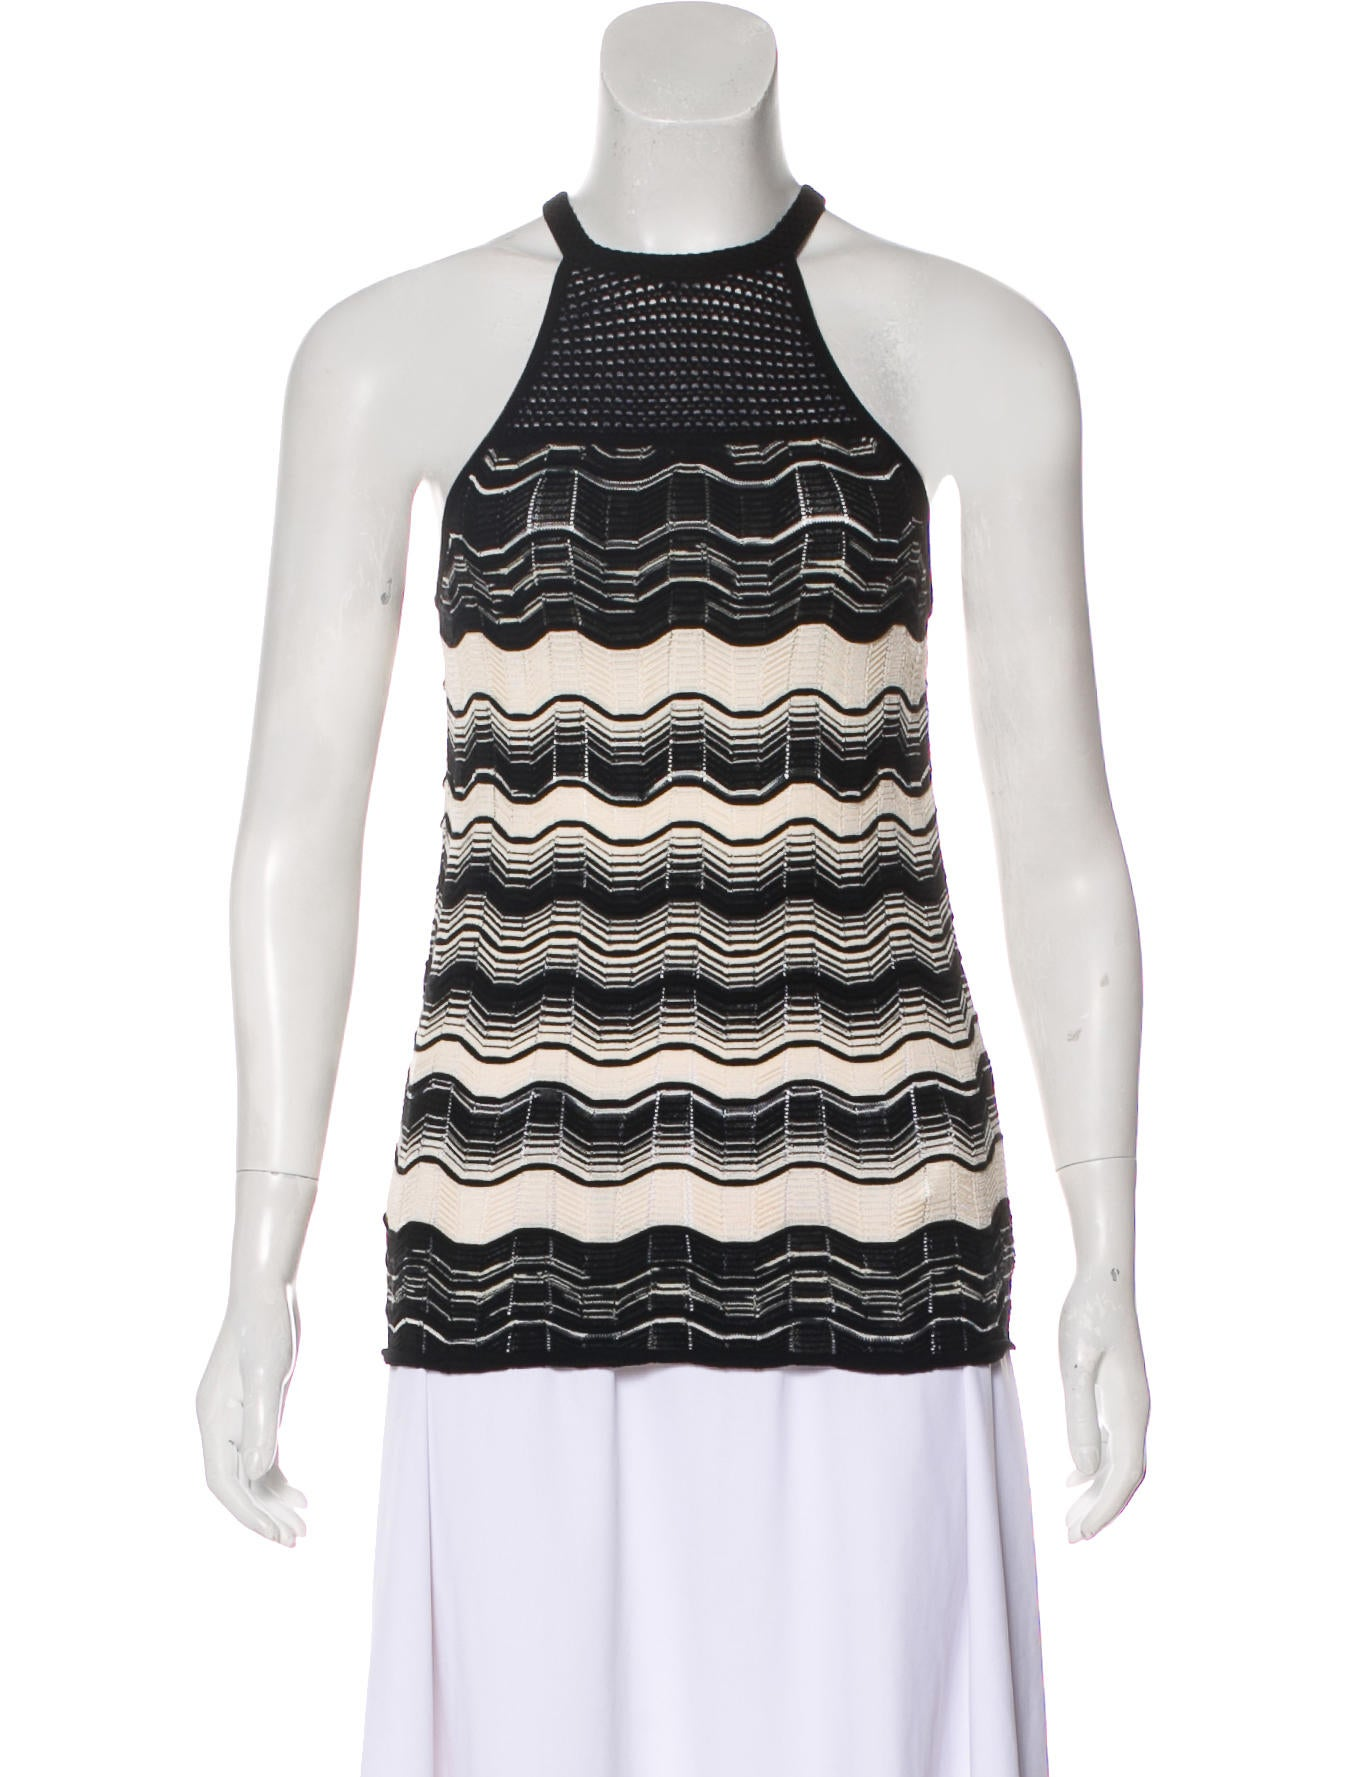 M Missoni Knit Halter Top - Clothing - WM449114 | The RealReal